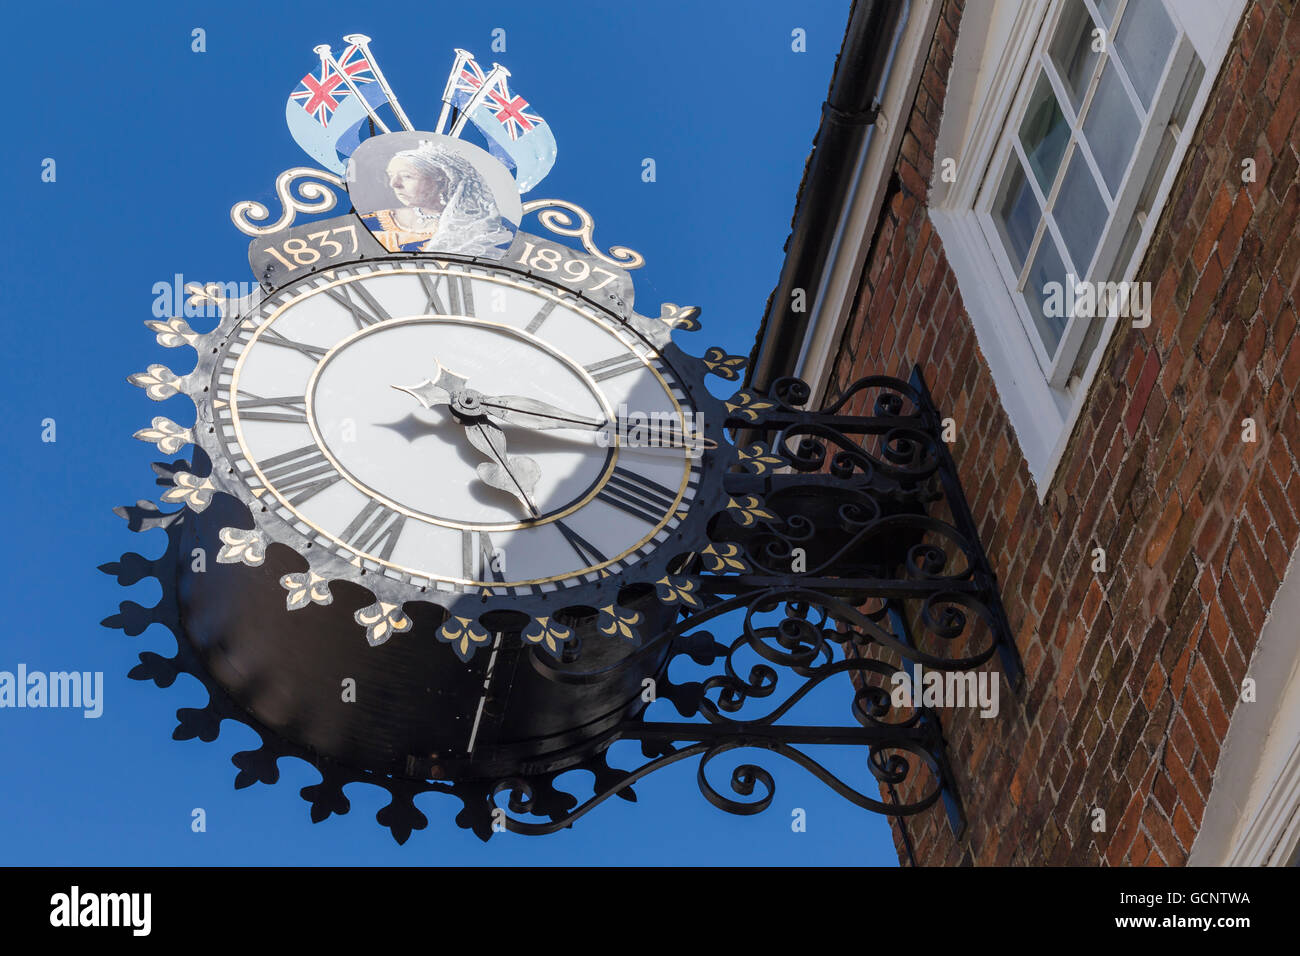 The Tolsey clock in Wotton-under-Edge celebrating the Jubilee of Queen Victoria's reign in 1897. - Stock Image